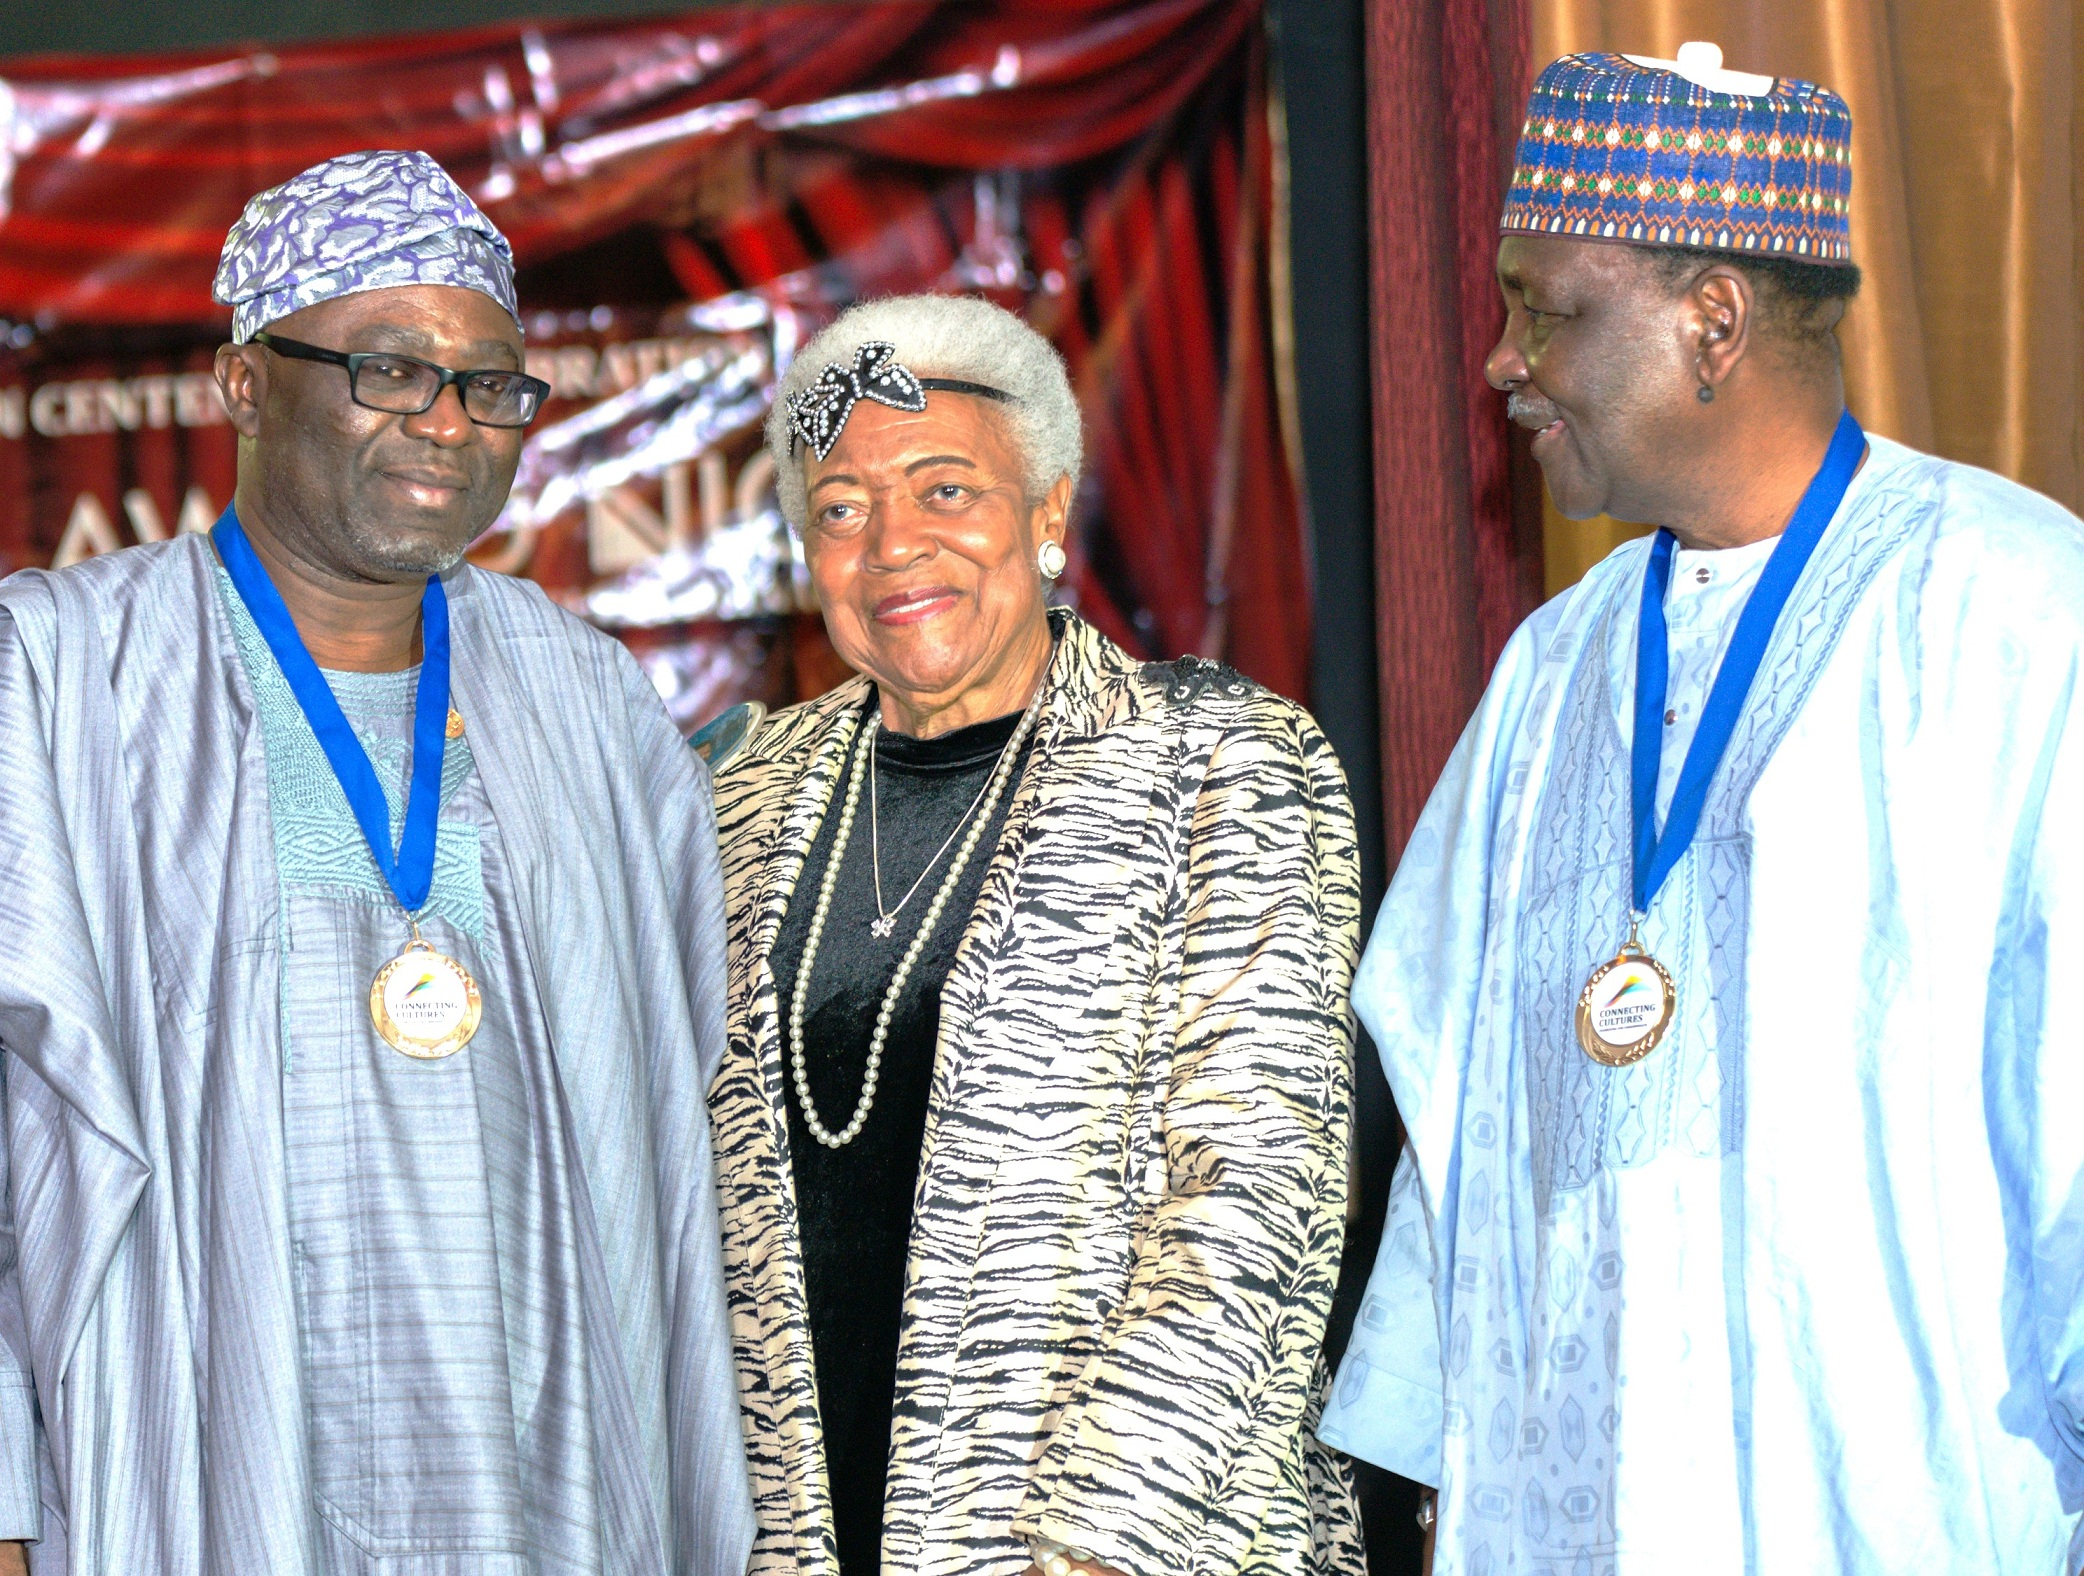 From right, Former Head of State, General Yakubu Gowon; American Civil Rights Leader, Dr Naomi Ruth King and Director General, Office of Economic Development & Partnerships State of Osun, Dr. Charles Akinola, during the Presentation of 2014 AD King Prize for Achievement in Public Service to Governor State of Osun, Ogbeni Rauf Aregbesola, at Commonwealth Observance Day in London.